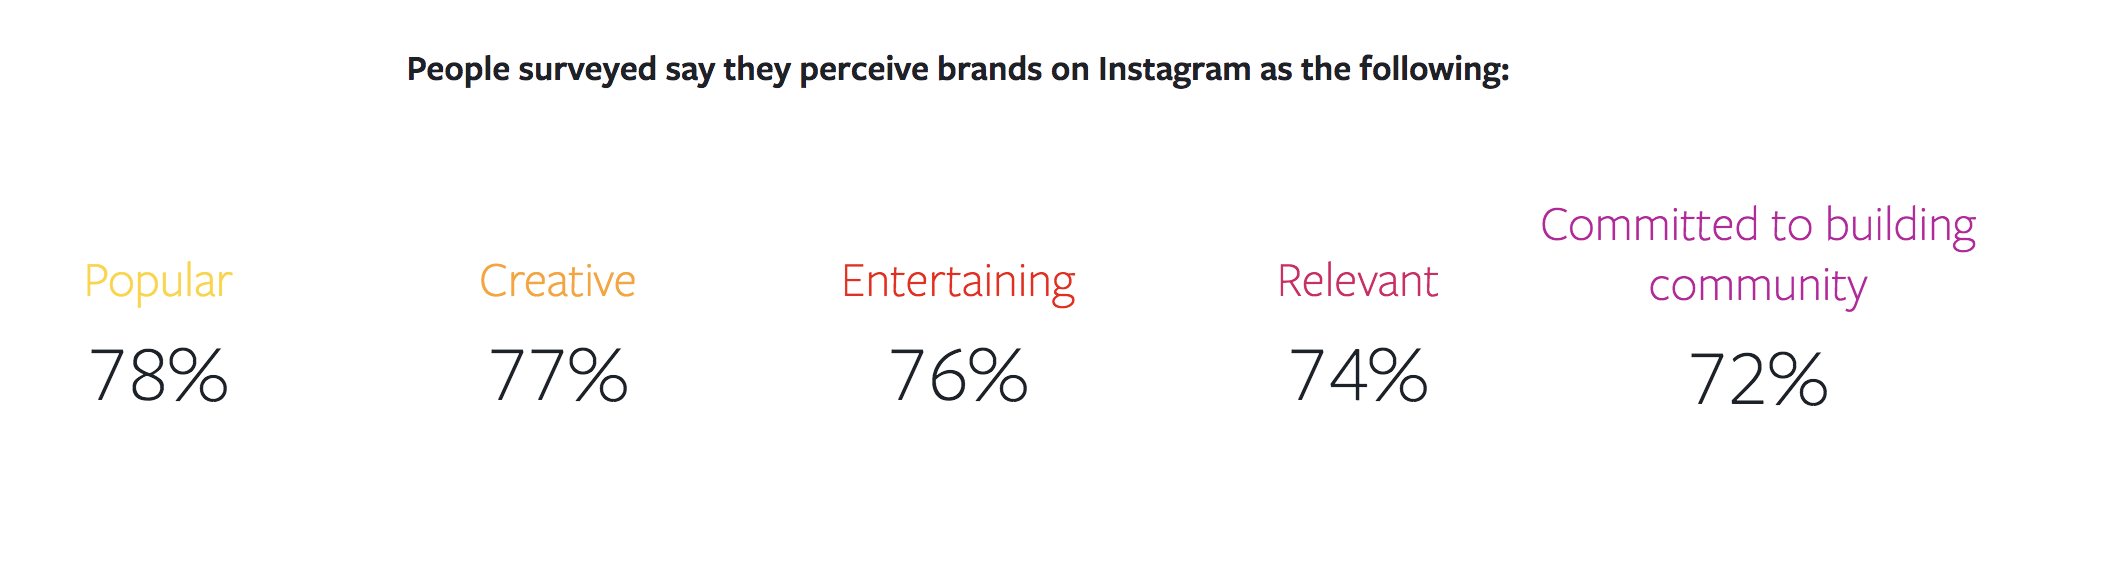 instagram-marketing-brand-perception